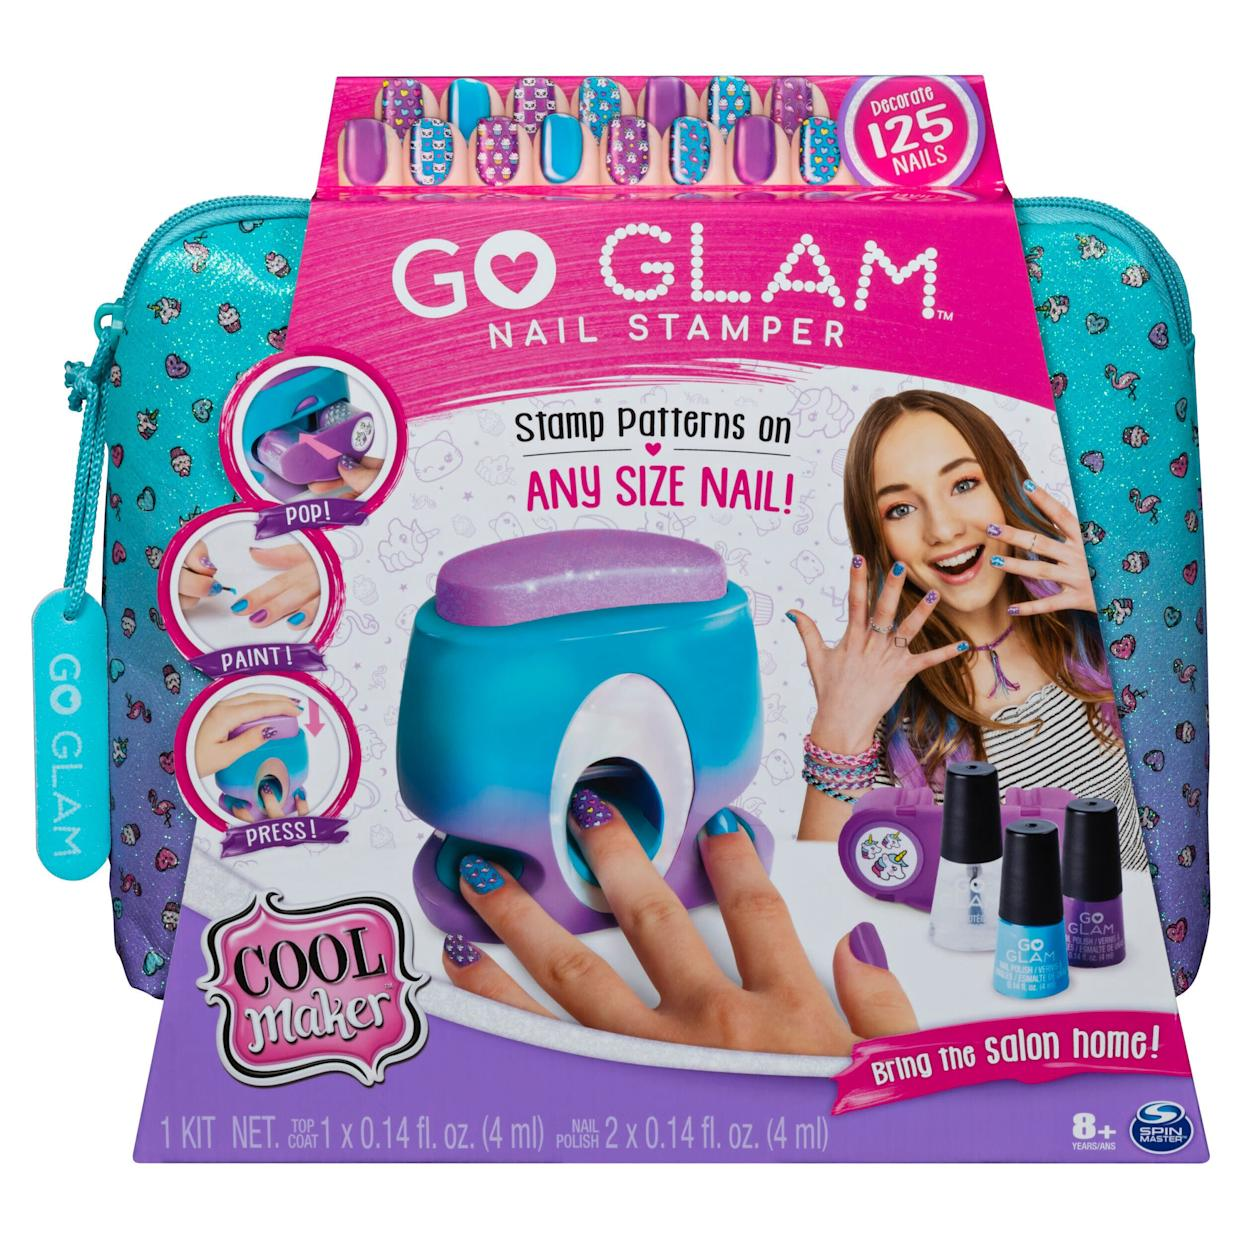 "Easily stamp and style custom manicures with the Cool Maker GO GLAM Nail Stamper! This at-home nail studio includes everything you need to decorate up to 125 nails of any size! With five trendy nail patterns to choose from &ndash; unicorns, cupcakes, flamingos and more &ndash; girls can mix and match to express their own unique style! Salon quality nails are as easy as pop, paint and press! <strong><a href=""https://fave.co/2PEU5Du"" rel=""nofollow noopener"" target=""_blank"" data-ylk=""slk:Find it for $25 at Walmart"" class=""link rapid-noclick-resp"">Find it for $25 at Walmart </a></strong>."